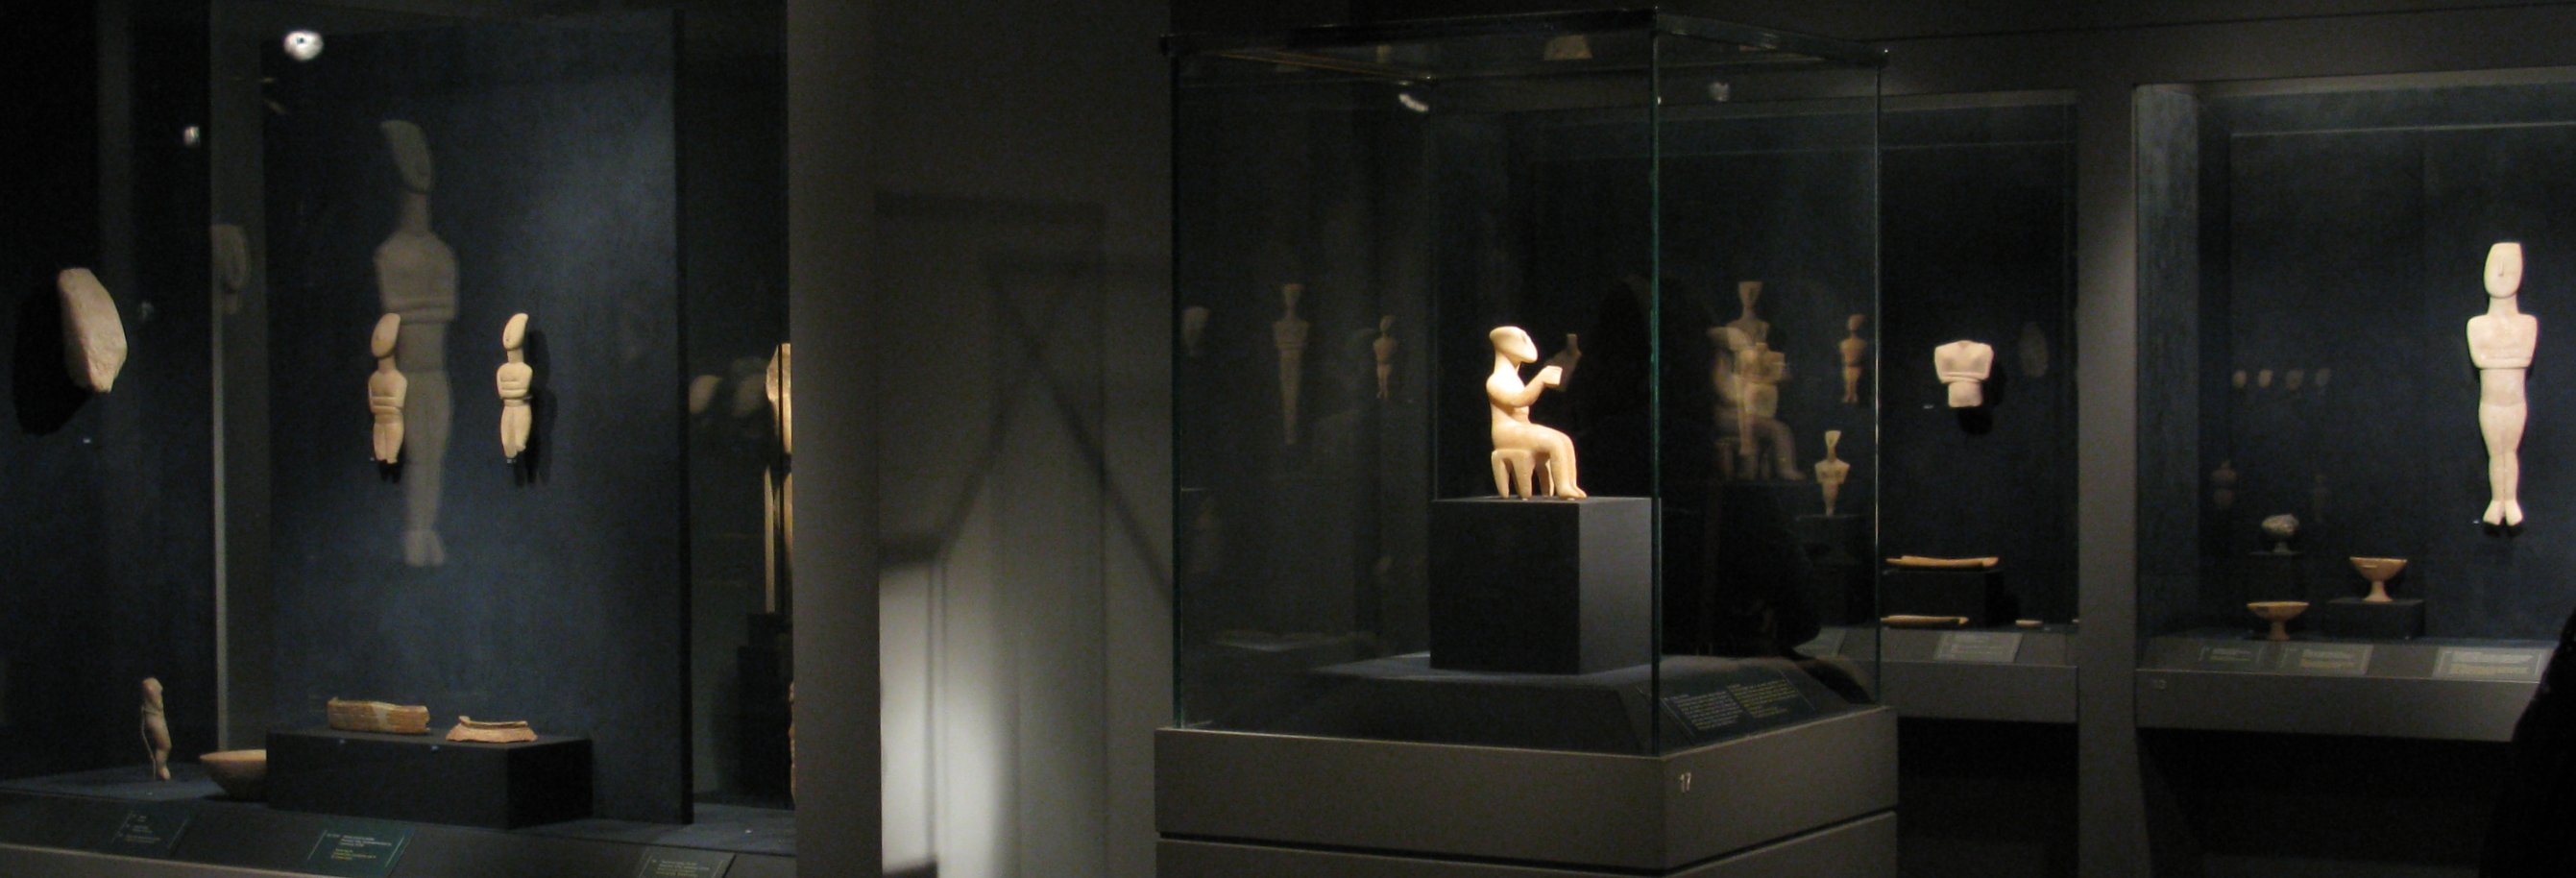 File:Cycladic Art Museum, Athens, Greece.jpg - Wikimedia ...